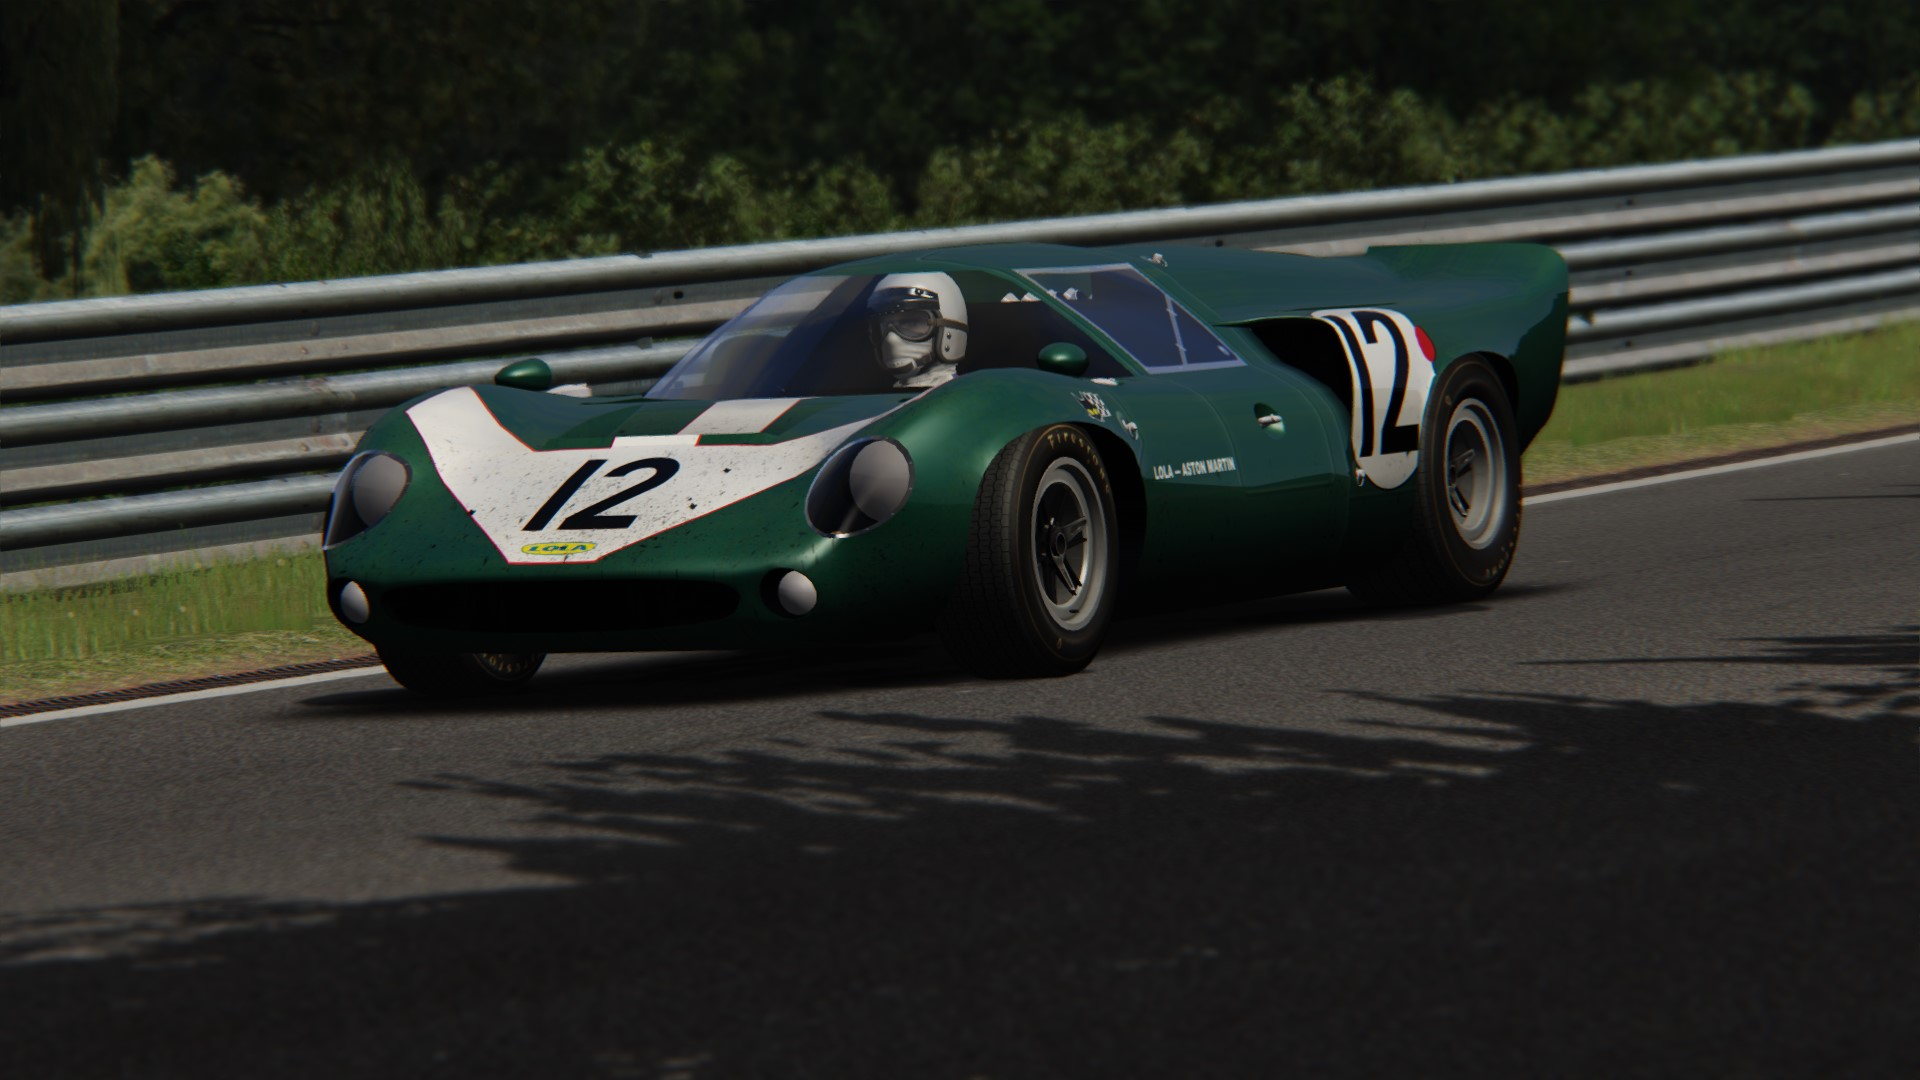 [NEWS] Le Mans Classics (not only GTL) - Page 29 Screen15